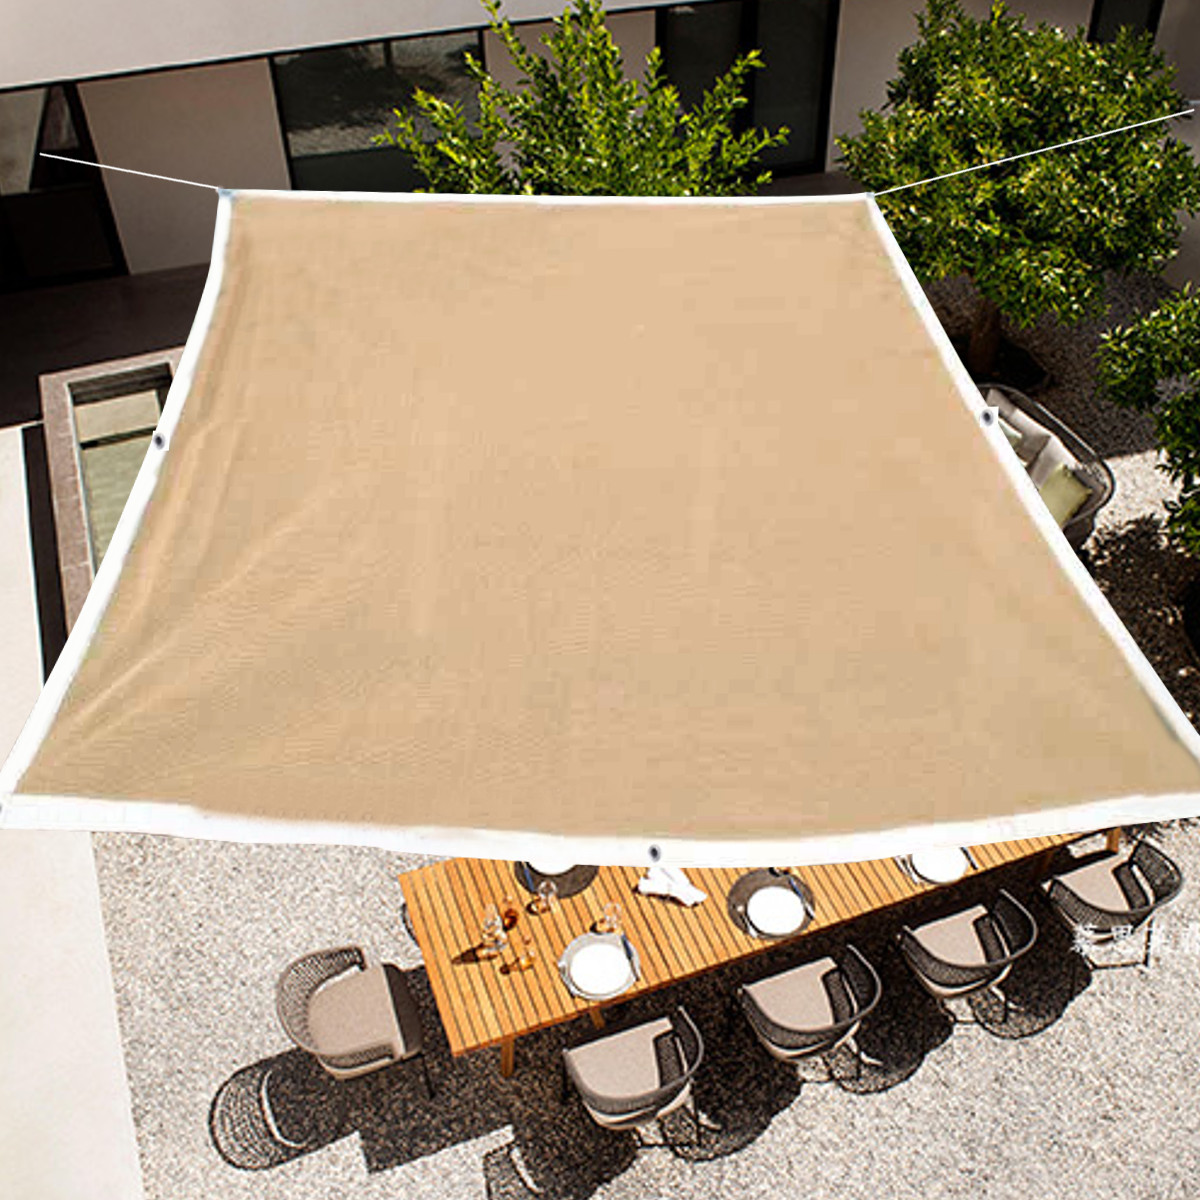 Outdoor Anti-UV Sunshade Sail Net Garden Patio Sunscreen Mesh Netting Cover